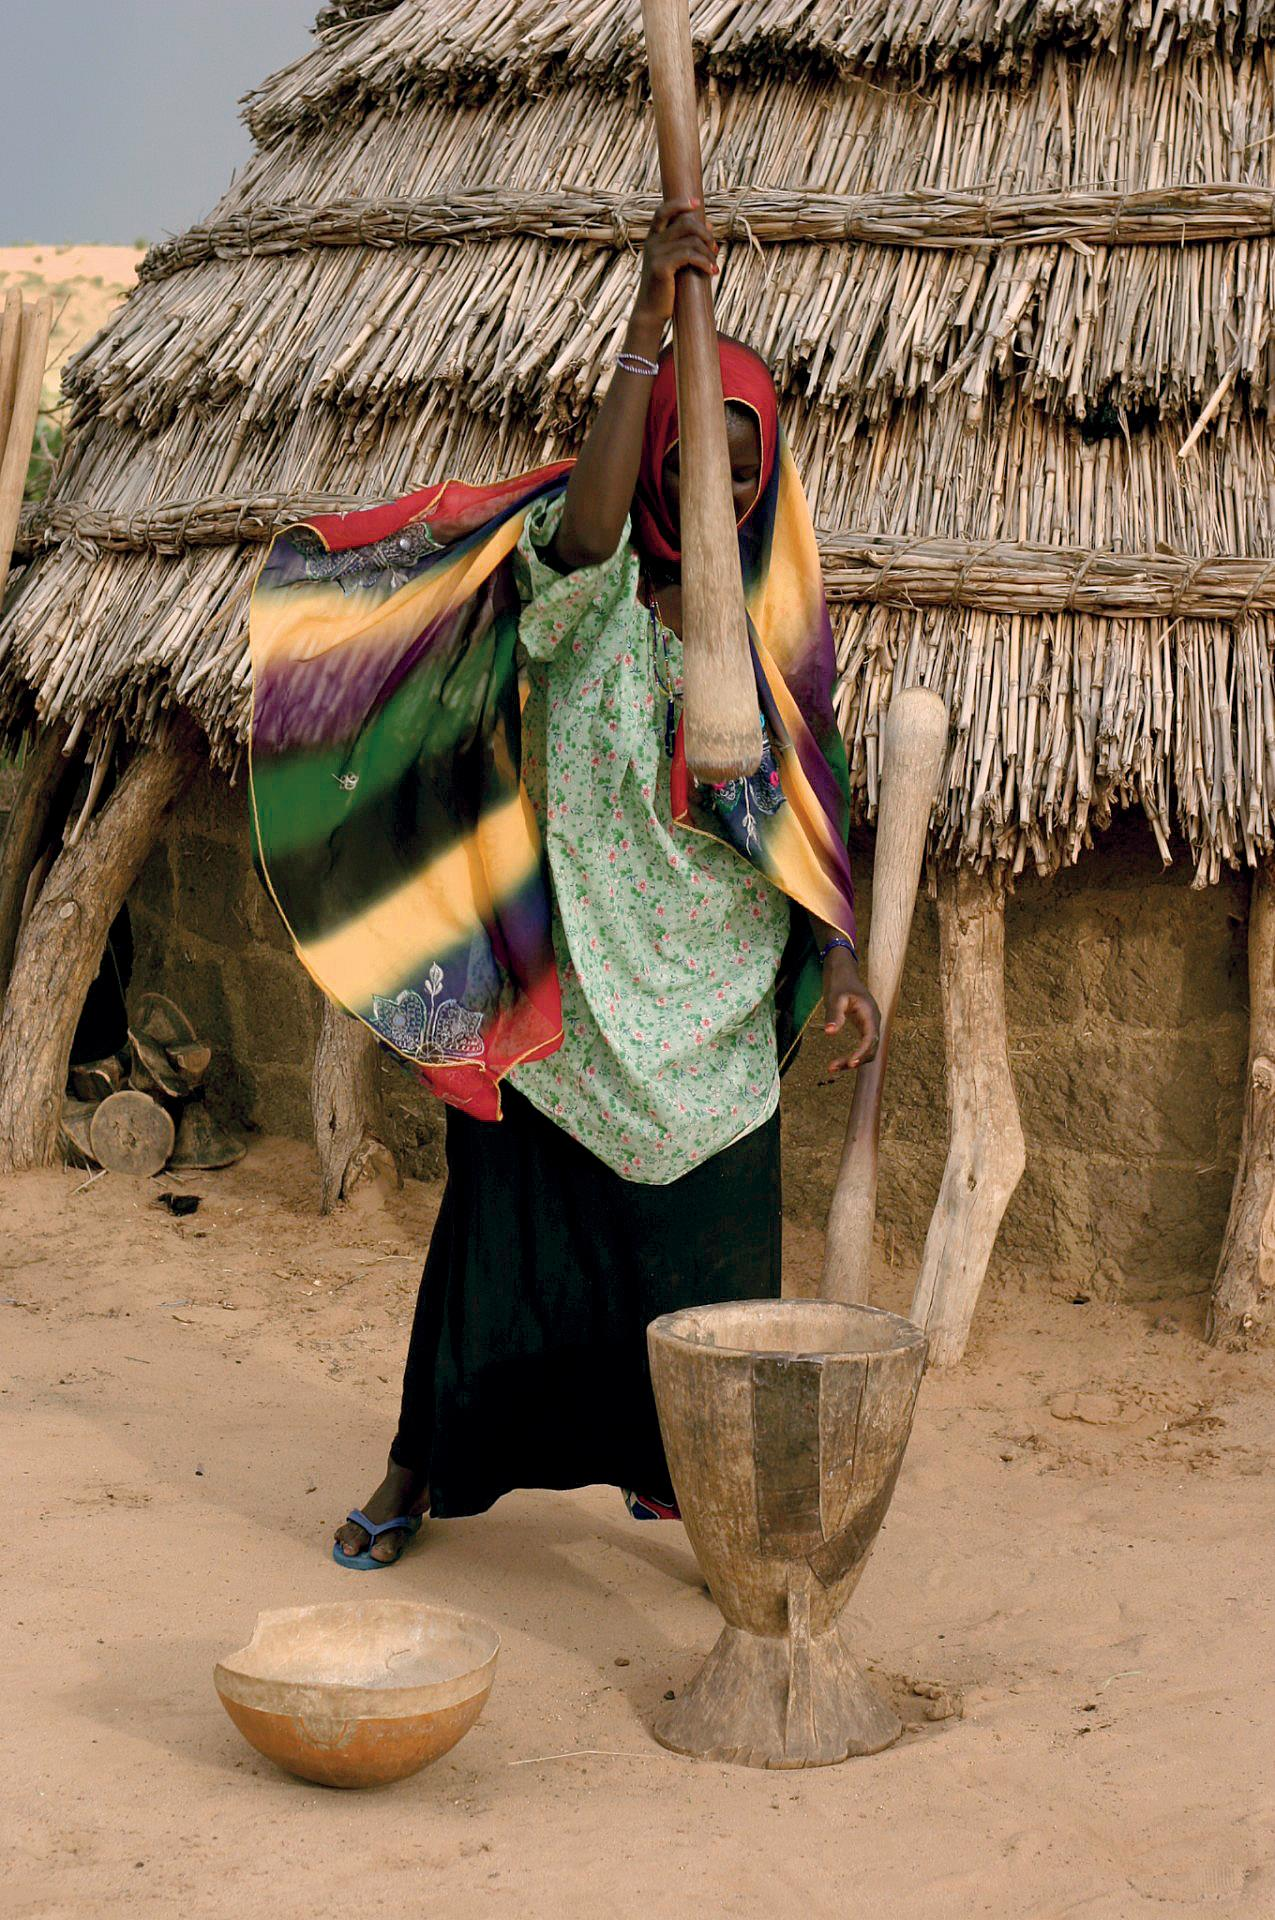 woman pounding grain